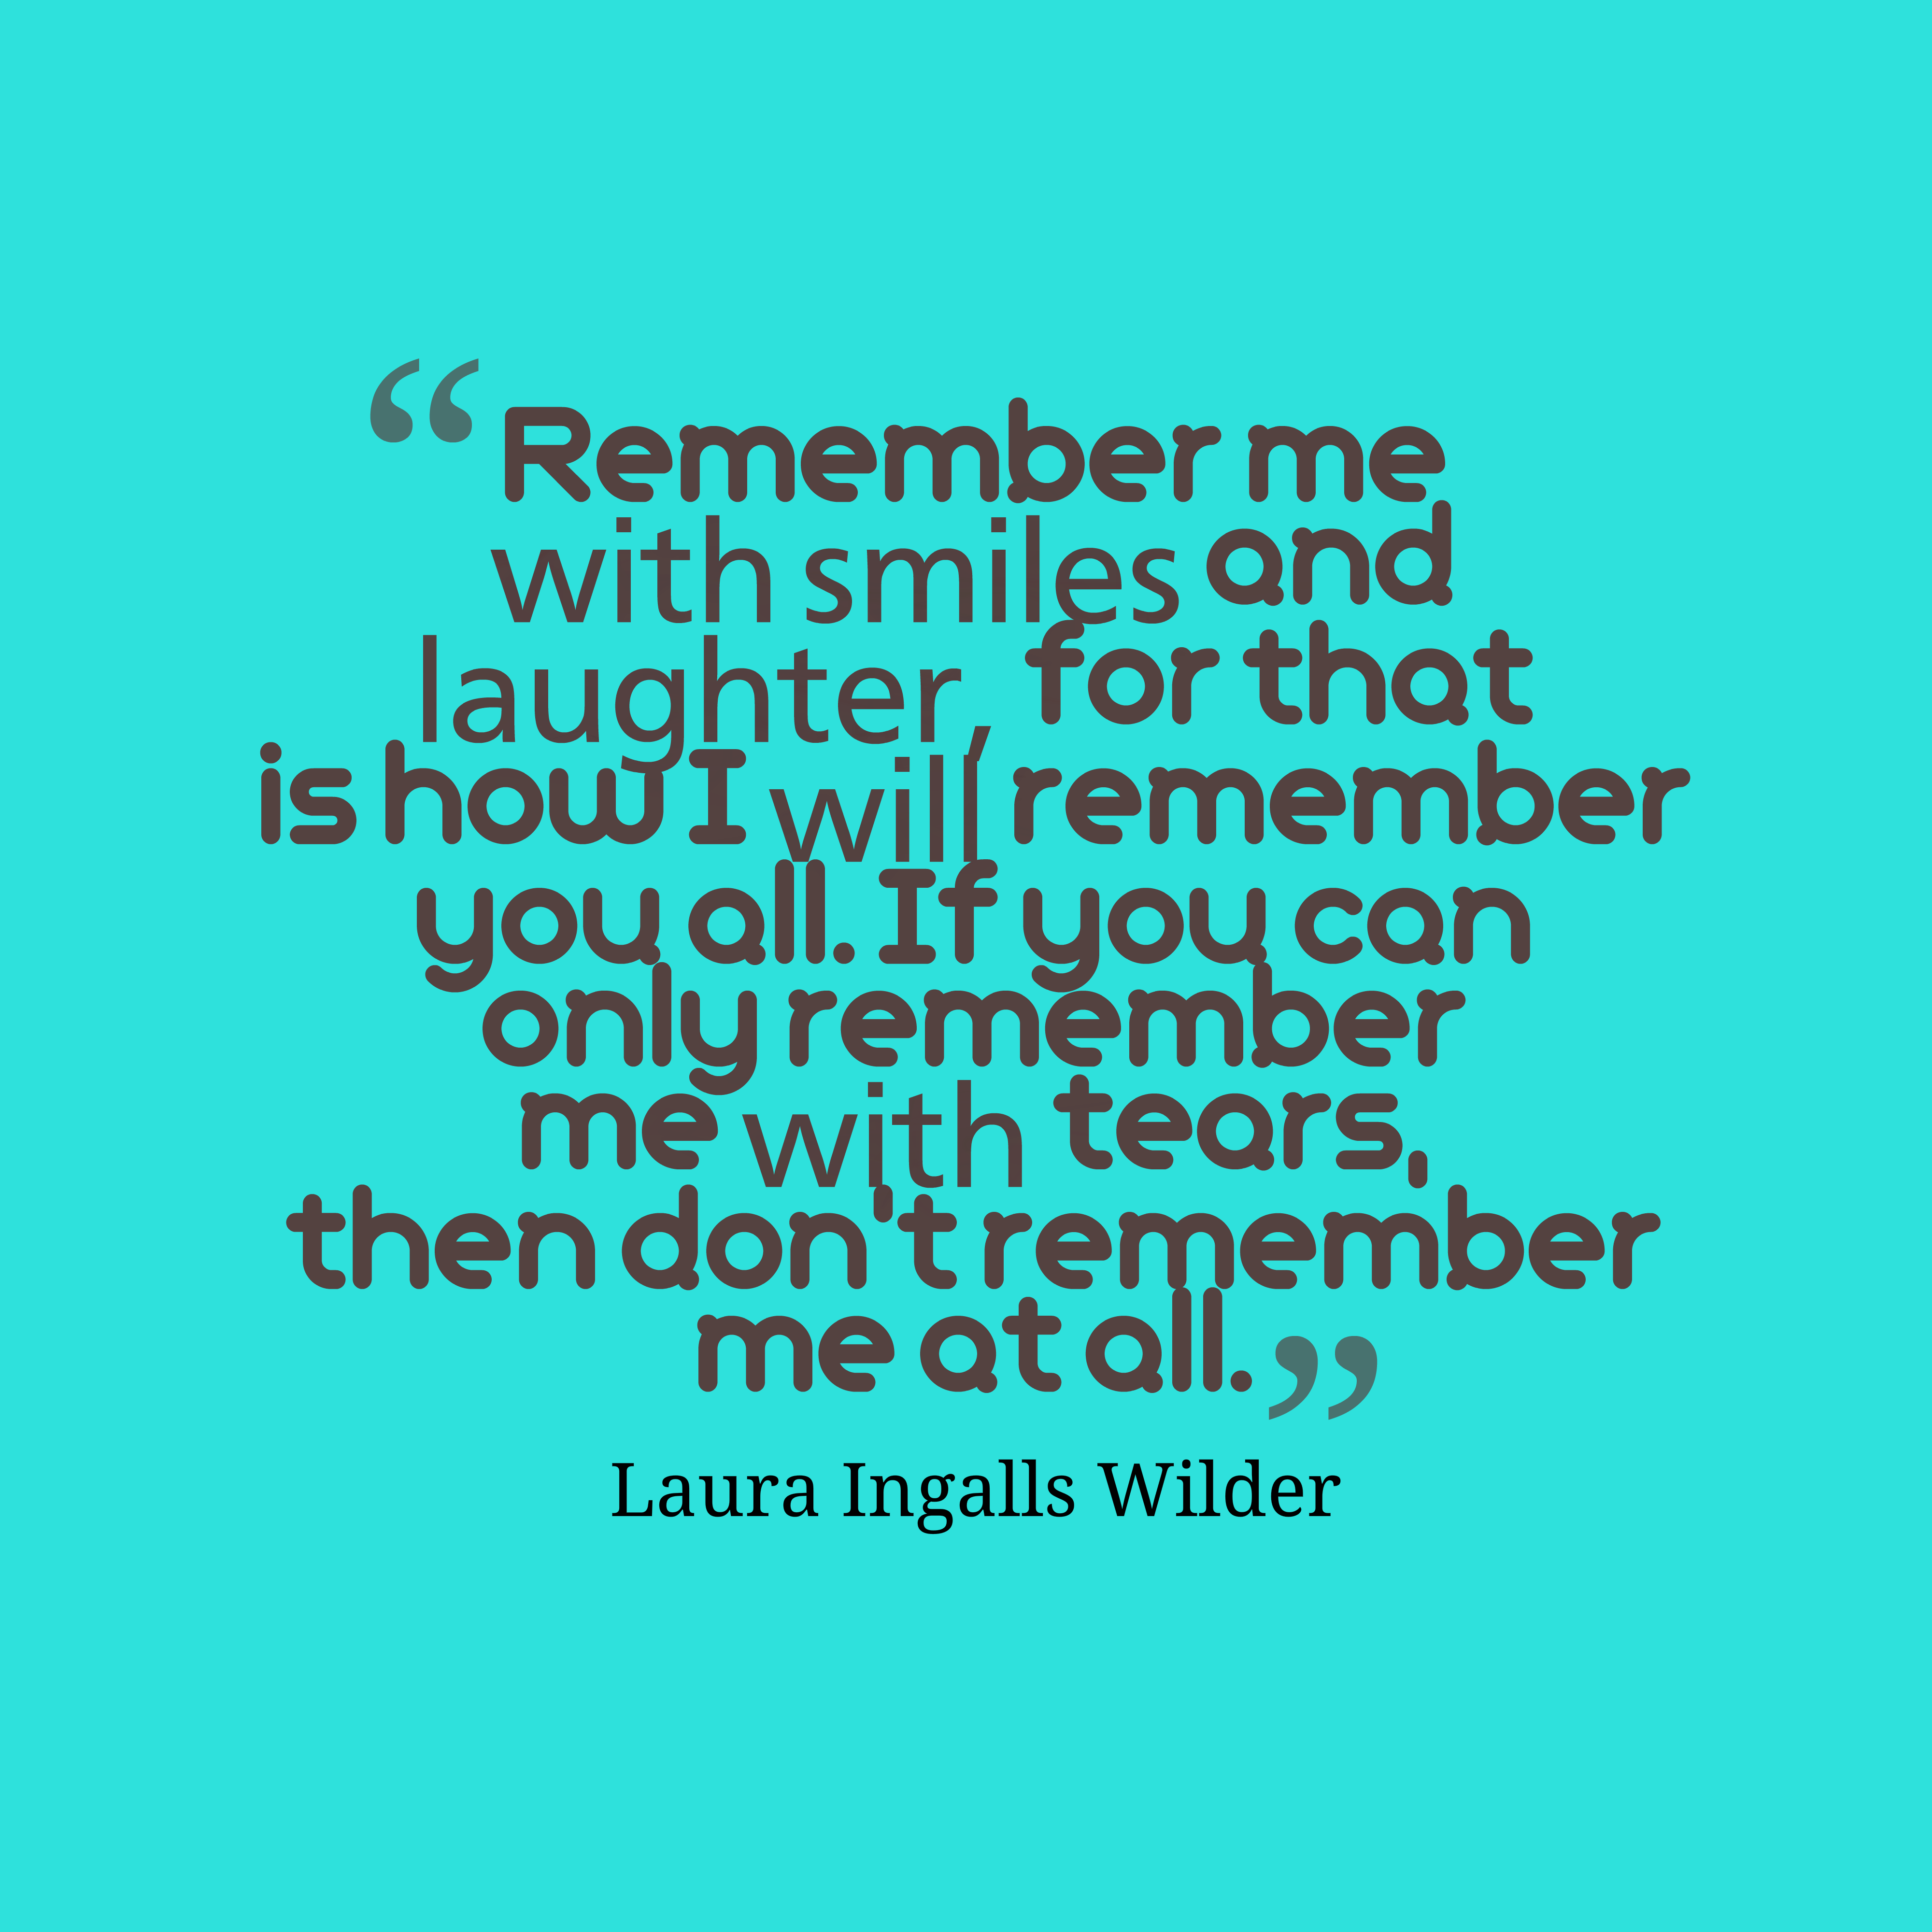 Laura Ingalls Wilder Quote About Remember